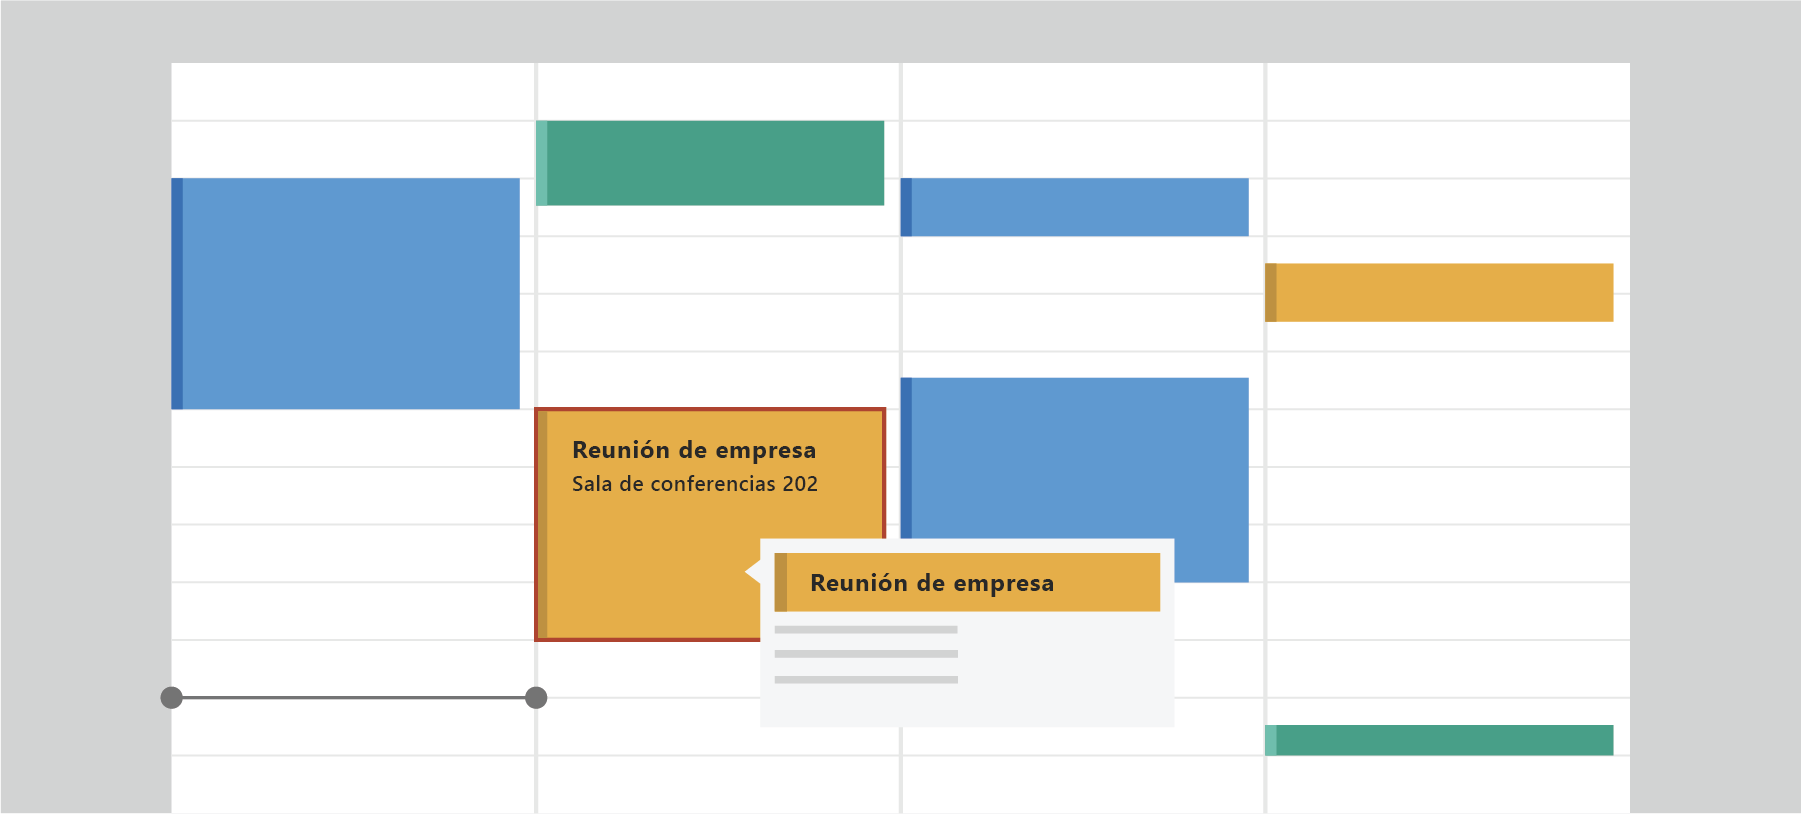 Muestra el Calendario de Outlook